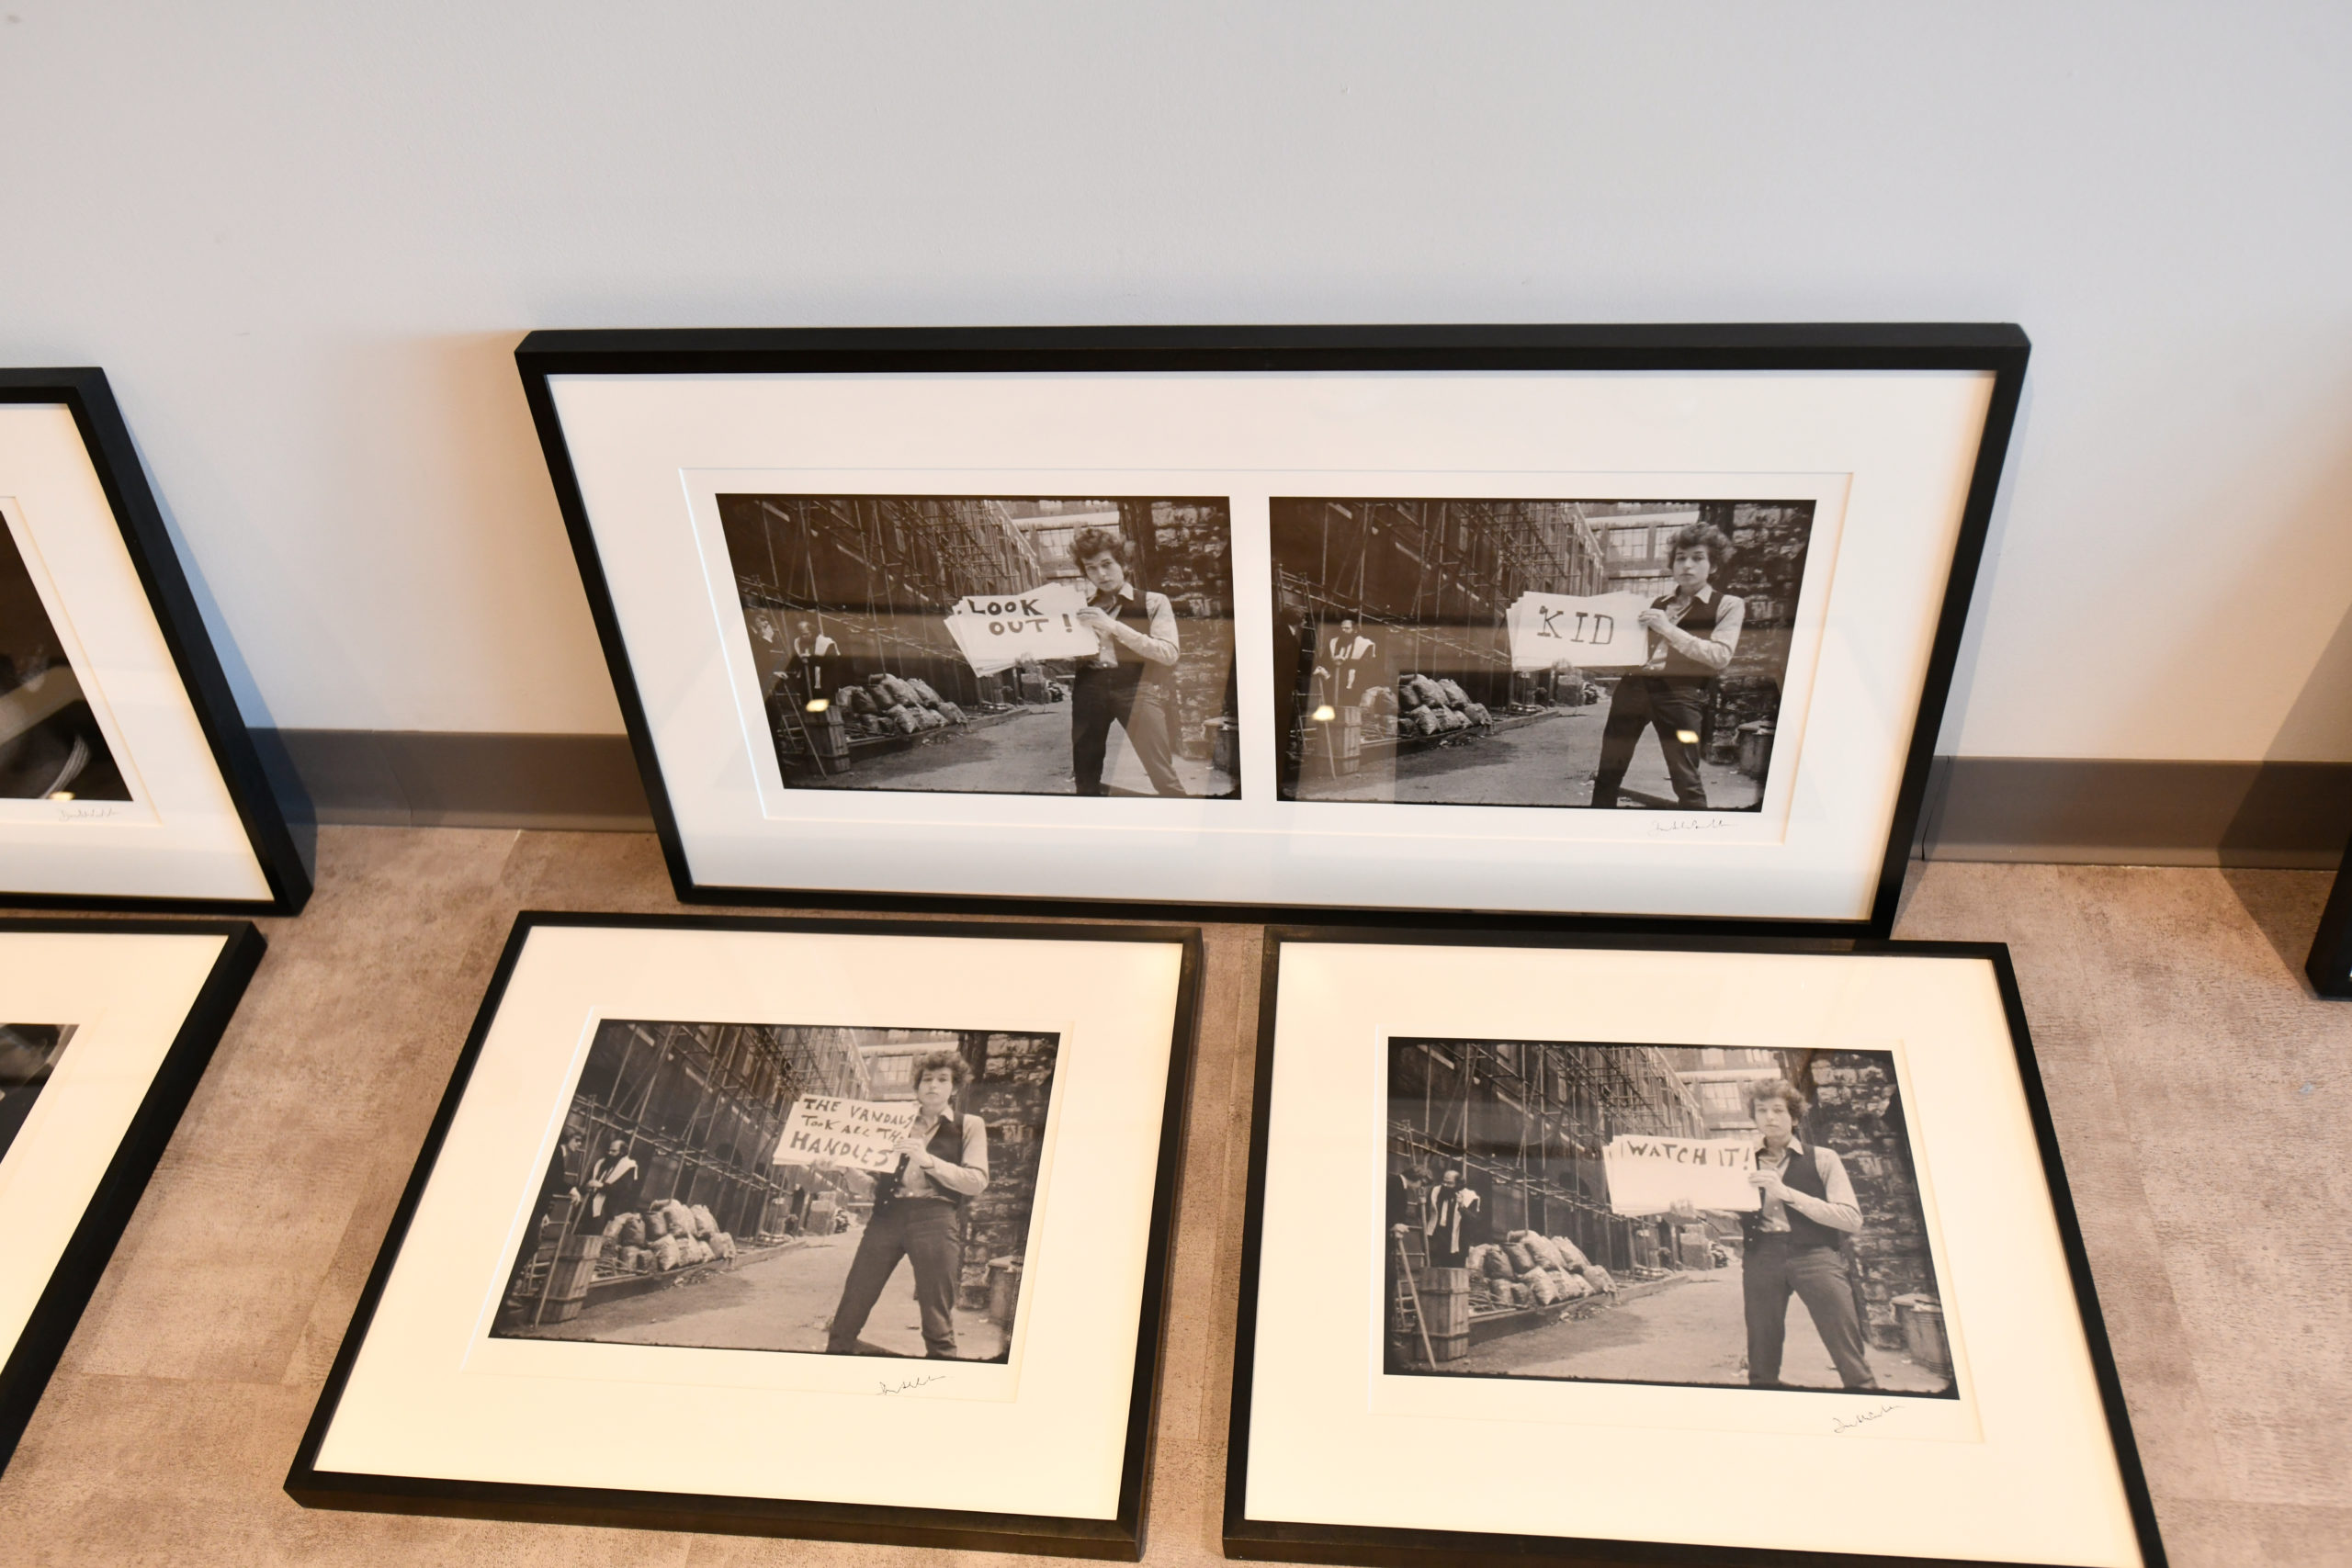 Images from Bob Dylan's